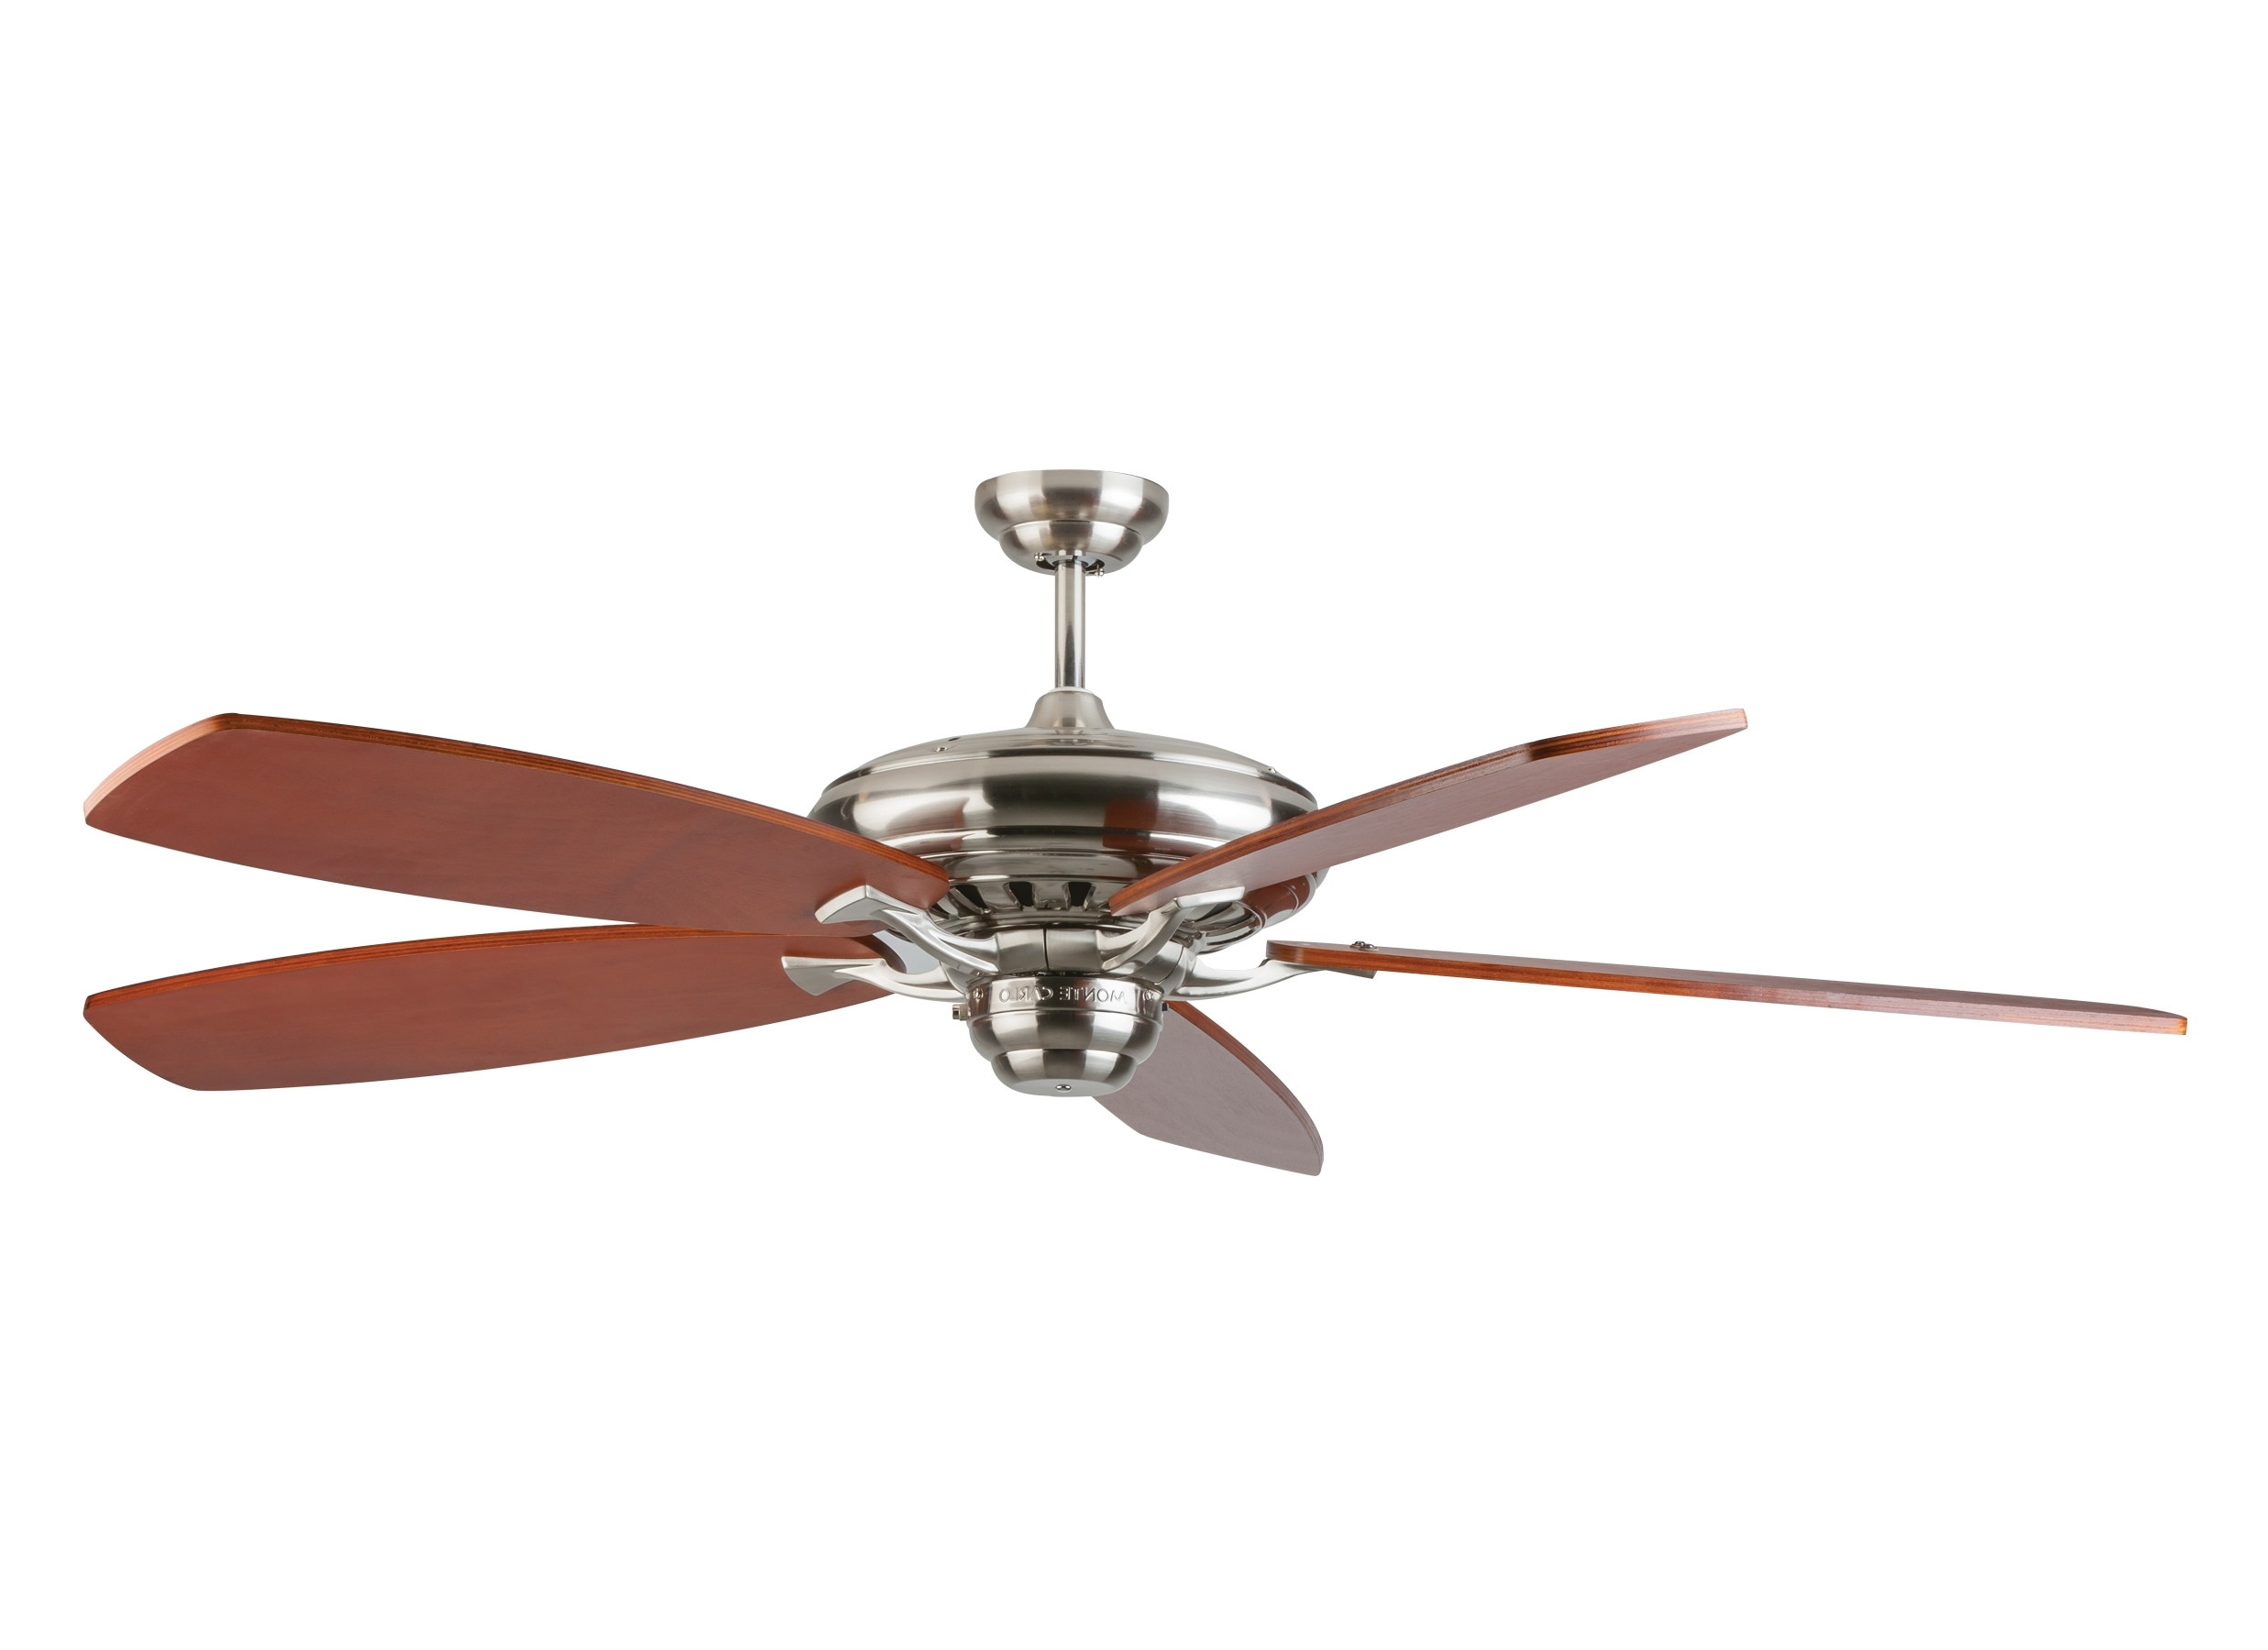 48 Outdoor Ceiling Fans With Light Kit Pertaining To Popular Ceiling Fanthe Monte Carlo Fan Company (Gallery 18 of 20)